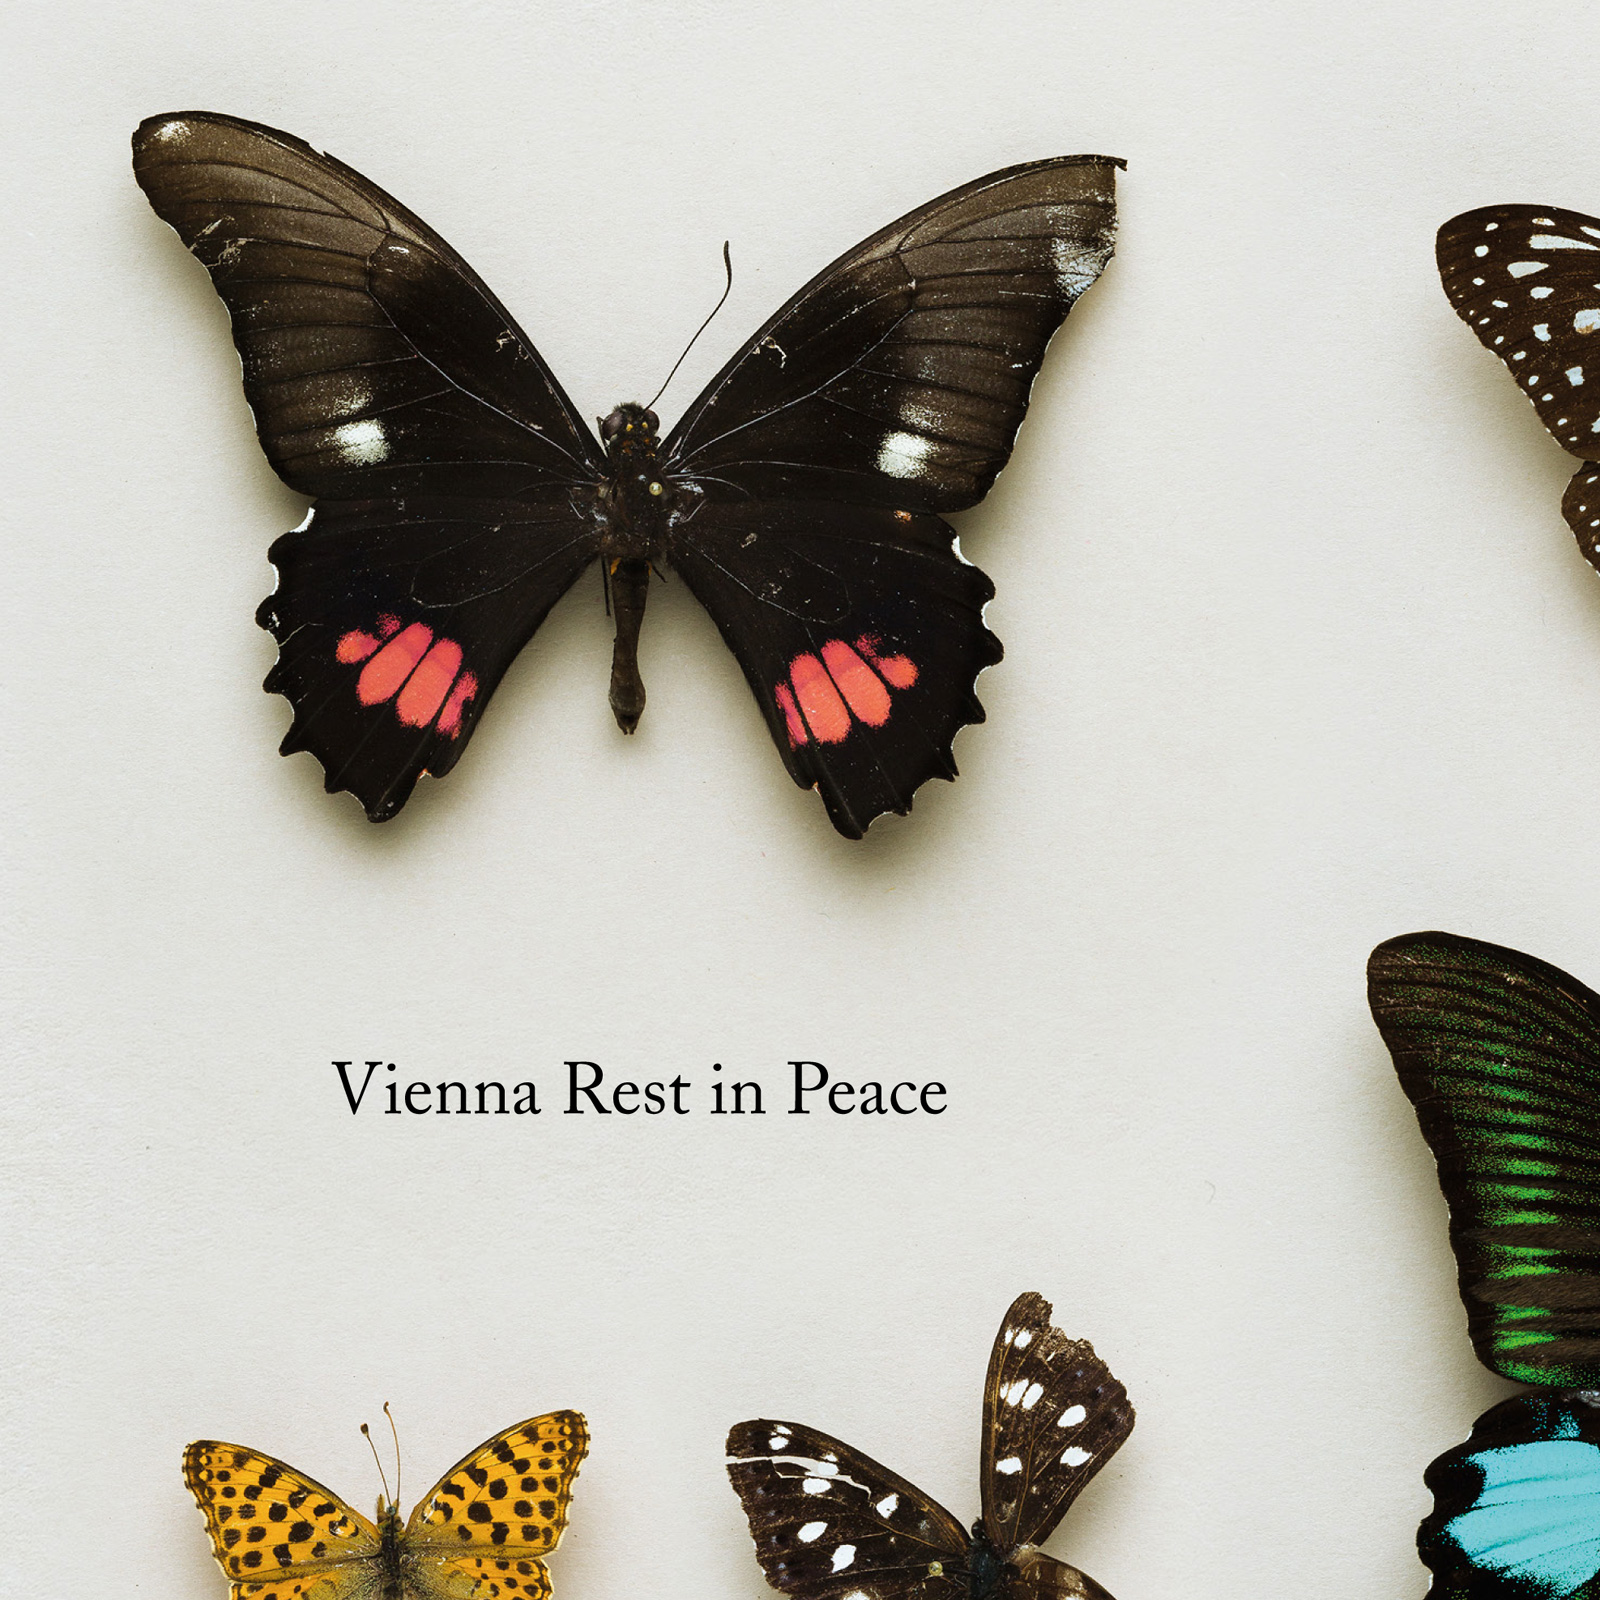 CD-trauer003-Vienna_Rest_in_Peace-1600px